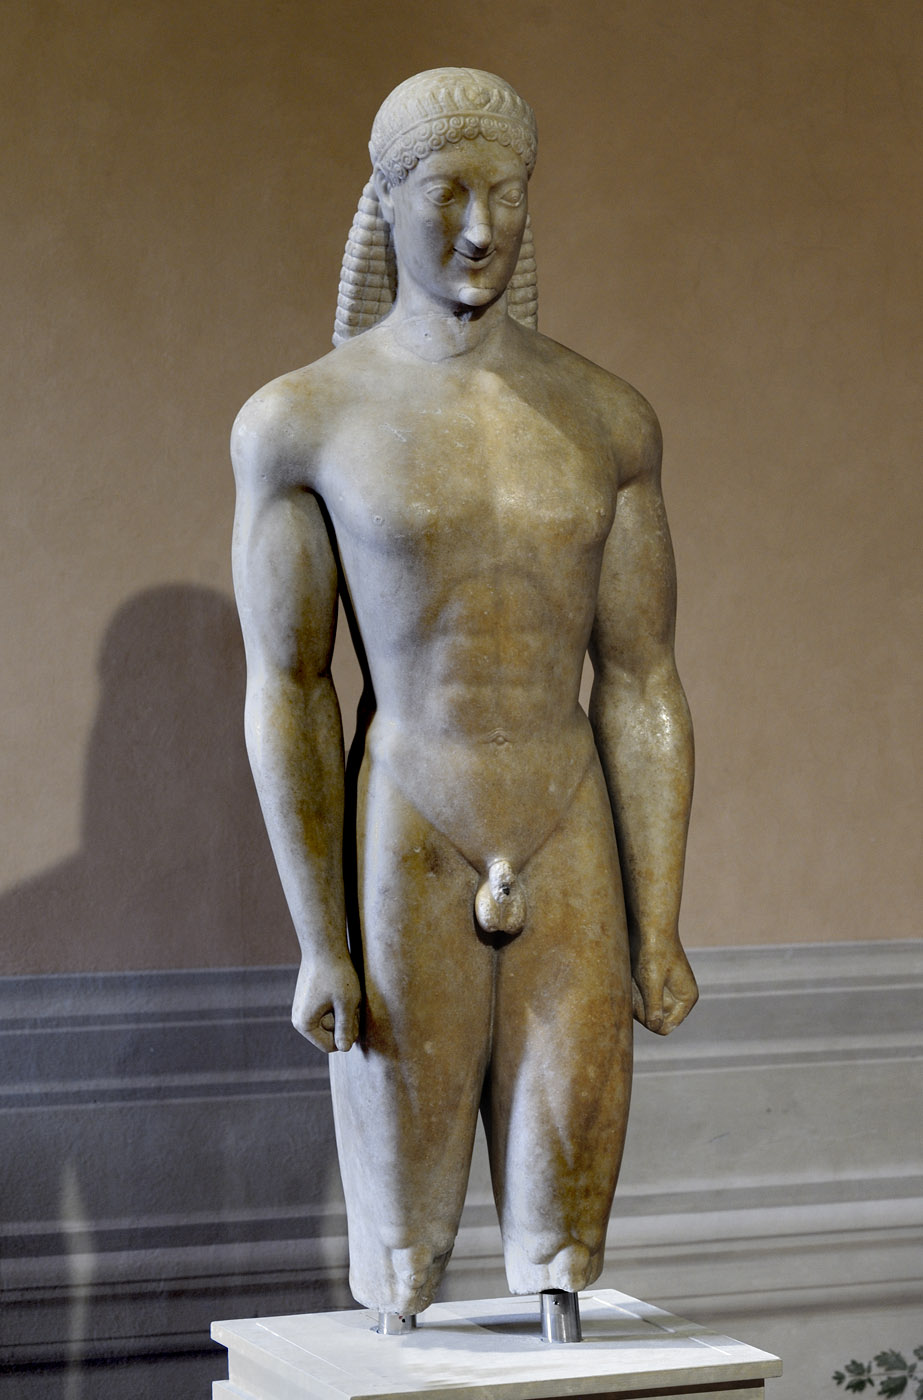 Kouros (funerary statue of a youth), so-called Apollo Milani. Parian marble. Attic work. Ca. 550 BCE. Inv. No. 99042. Athens, National Archaeological Museum